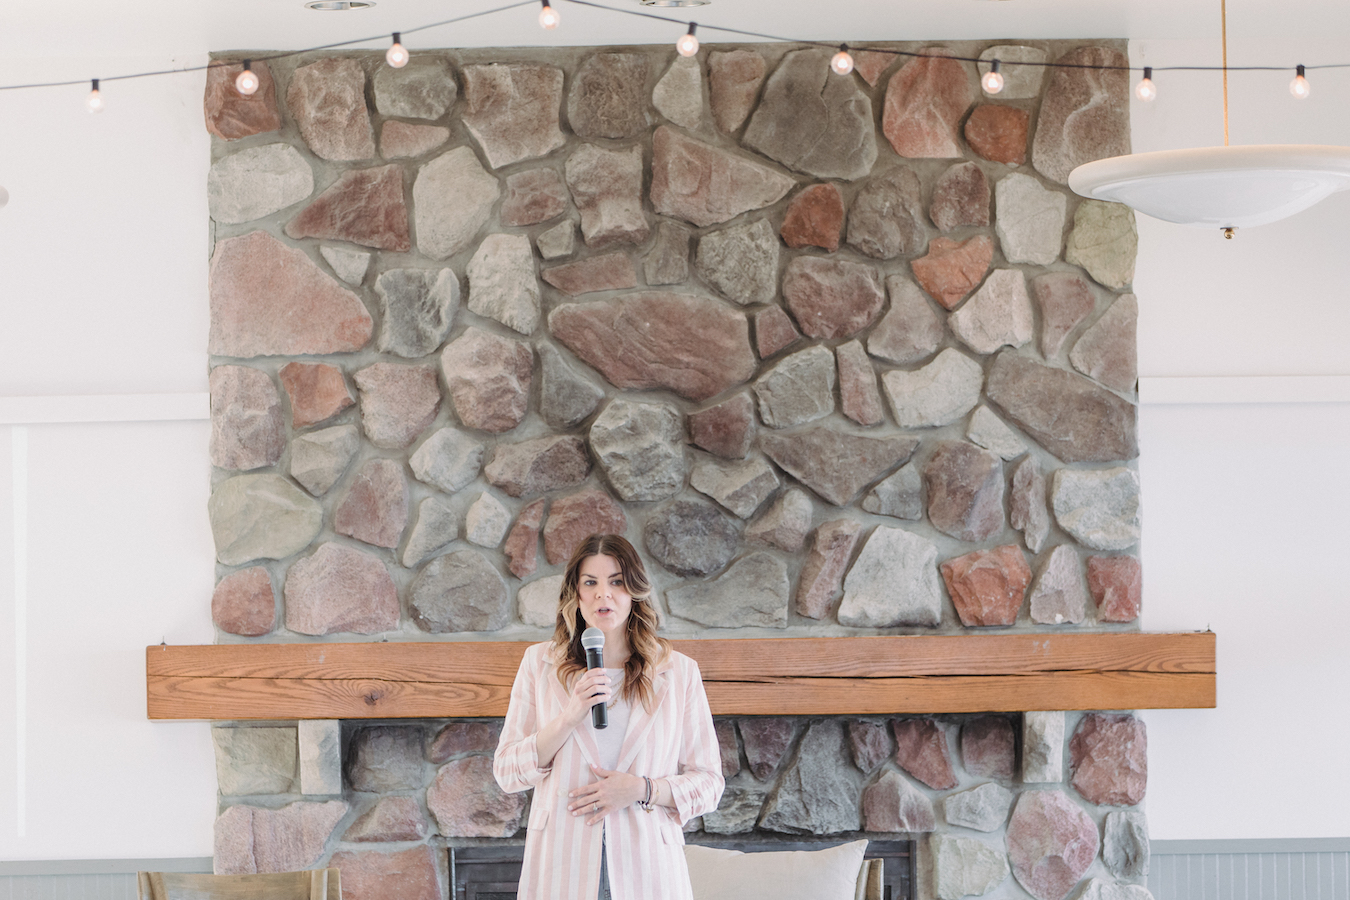 Amanda Adamcheck on stage speaking at The Haven Conference in West Olive, Michigan